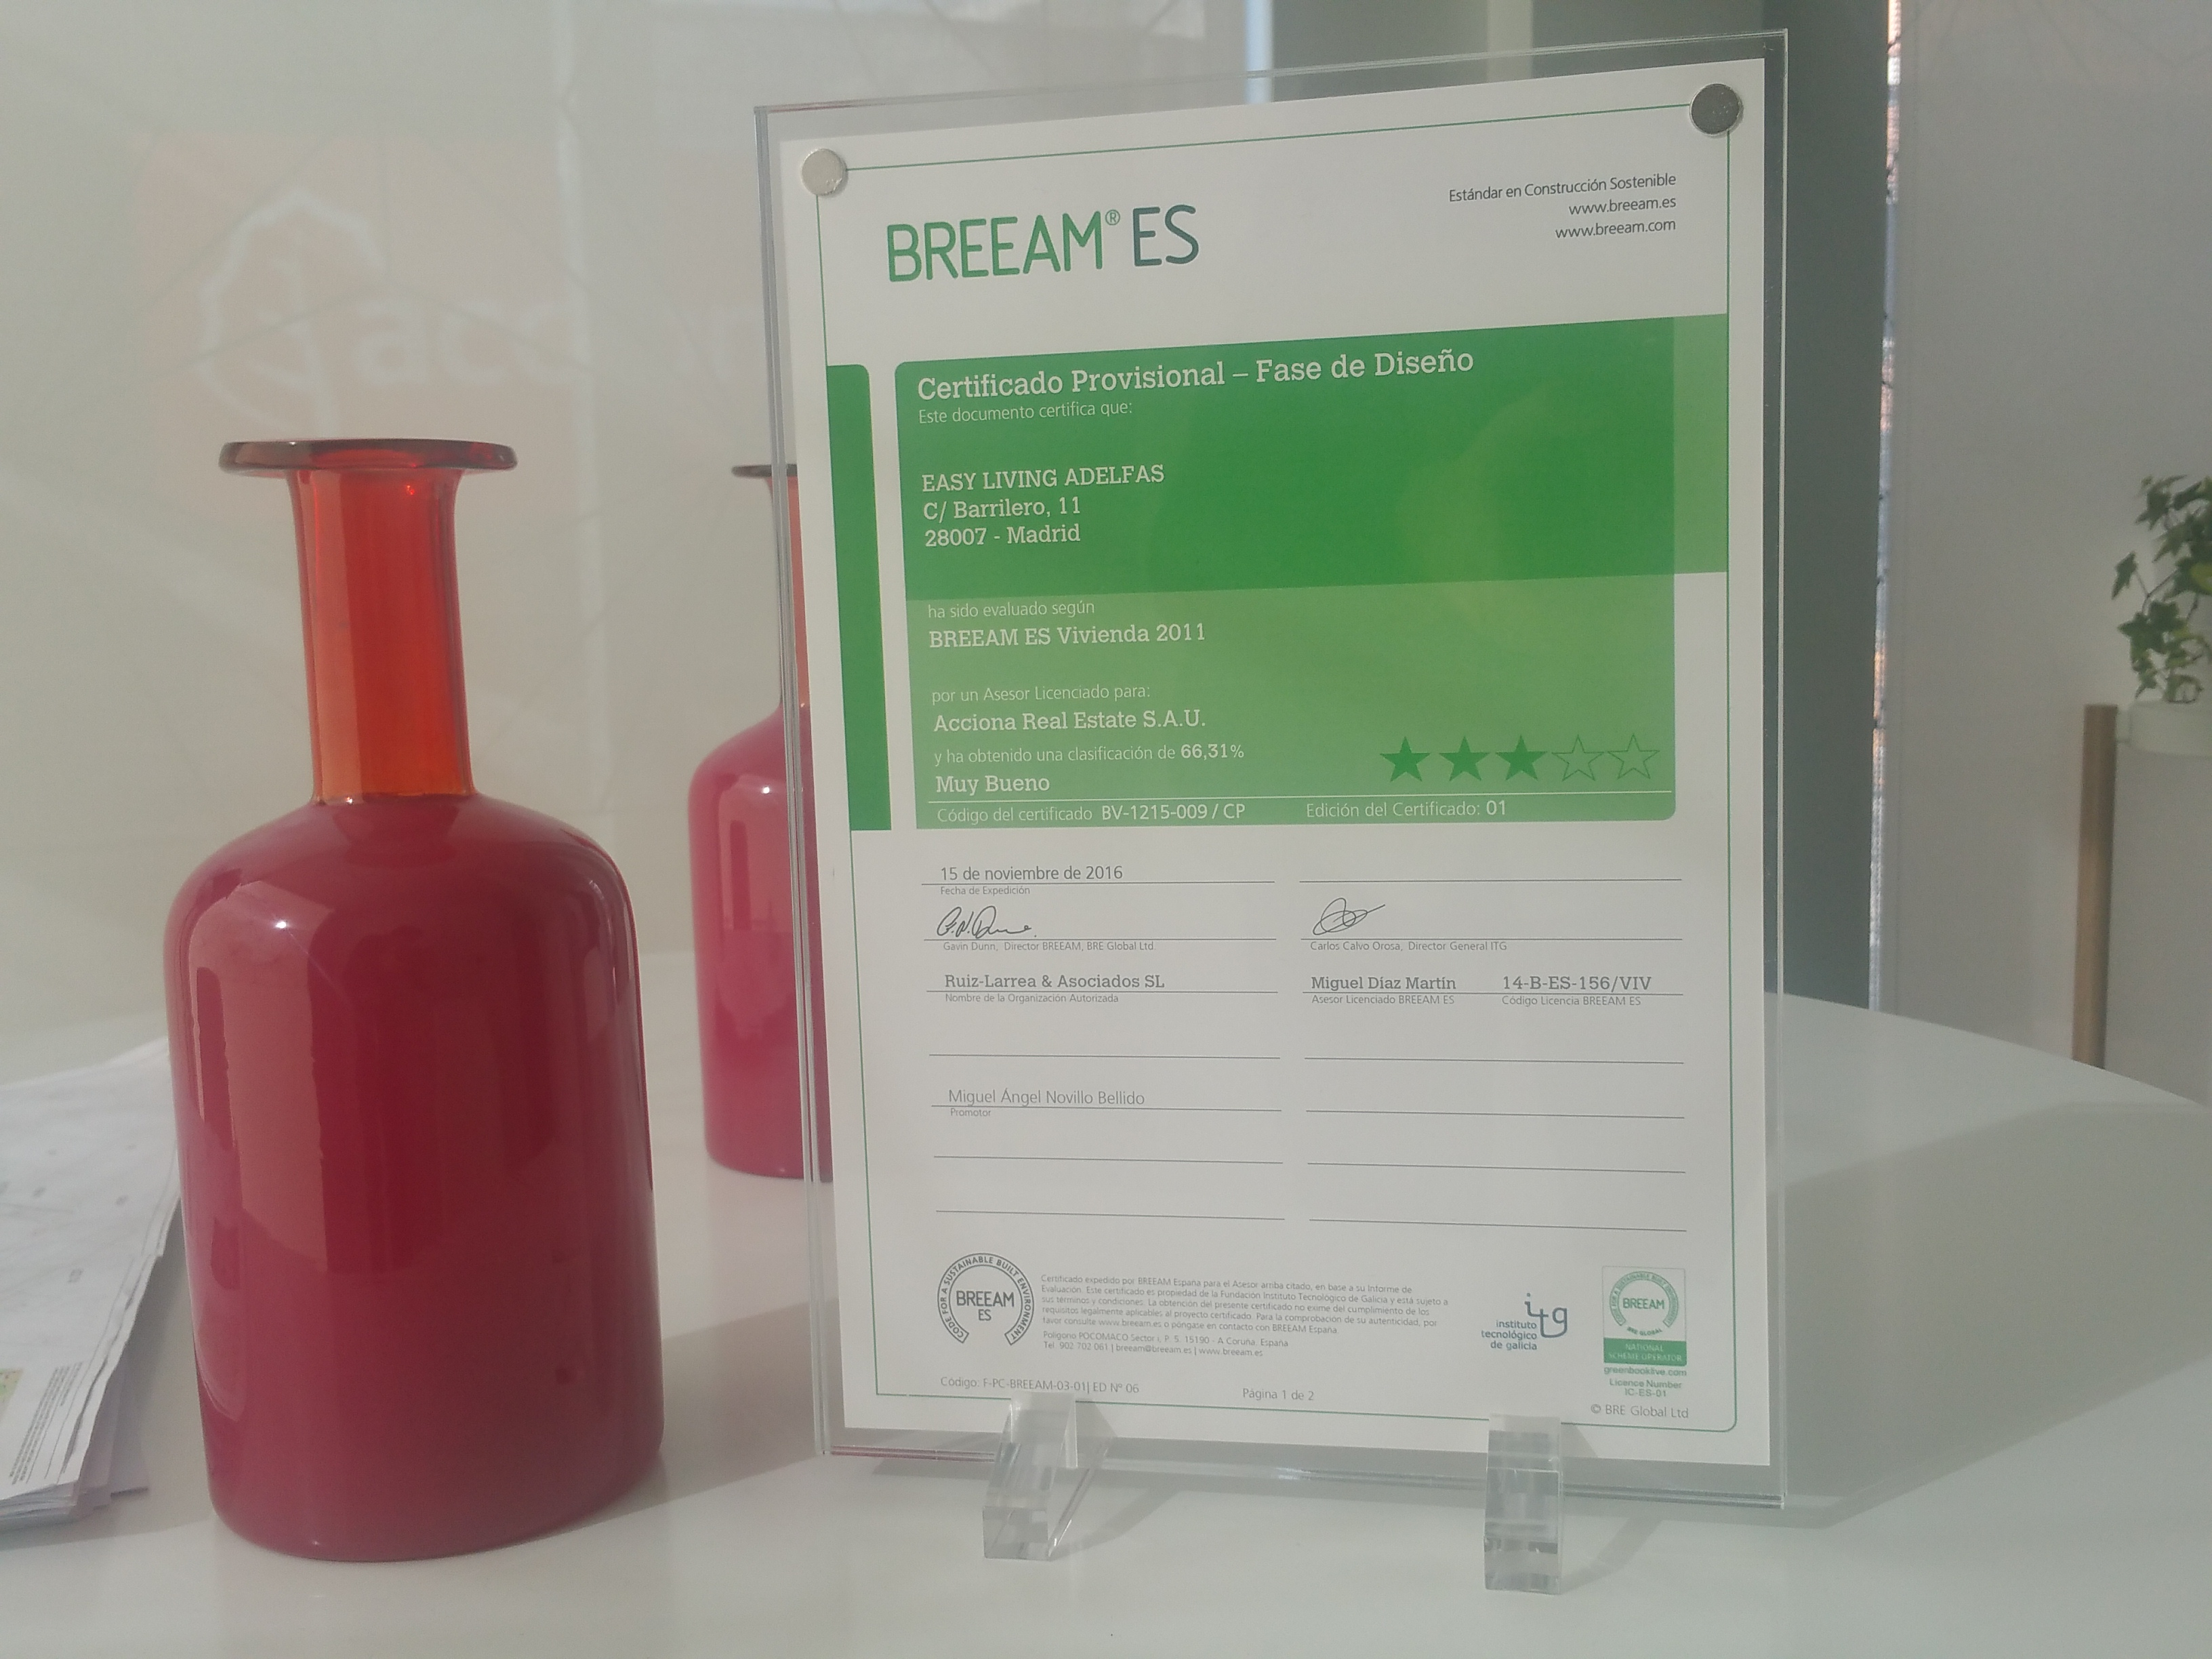 The BREEAM Provisional Certificate is already in the building site